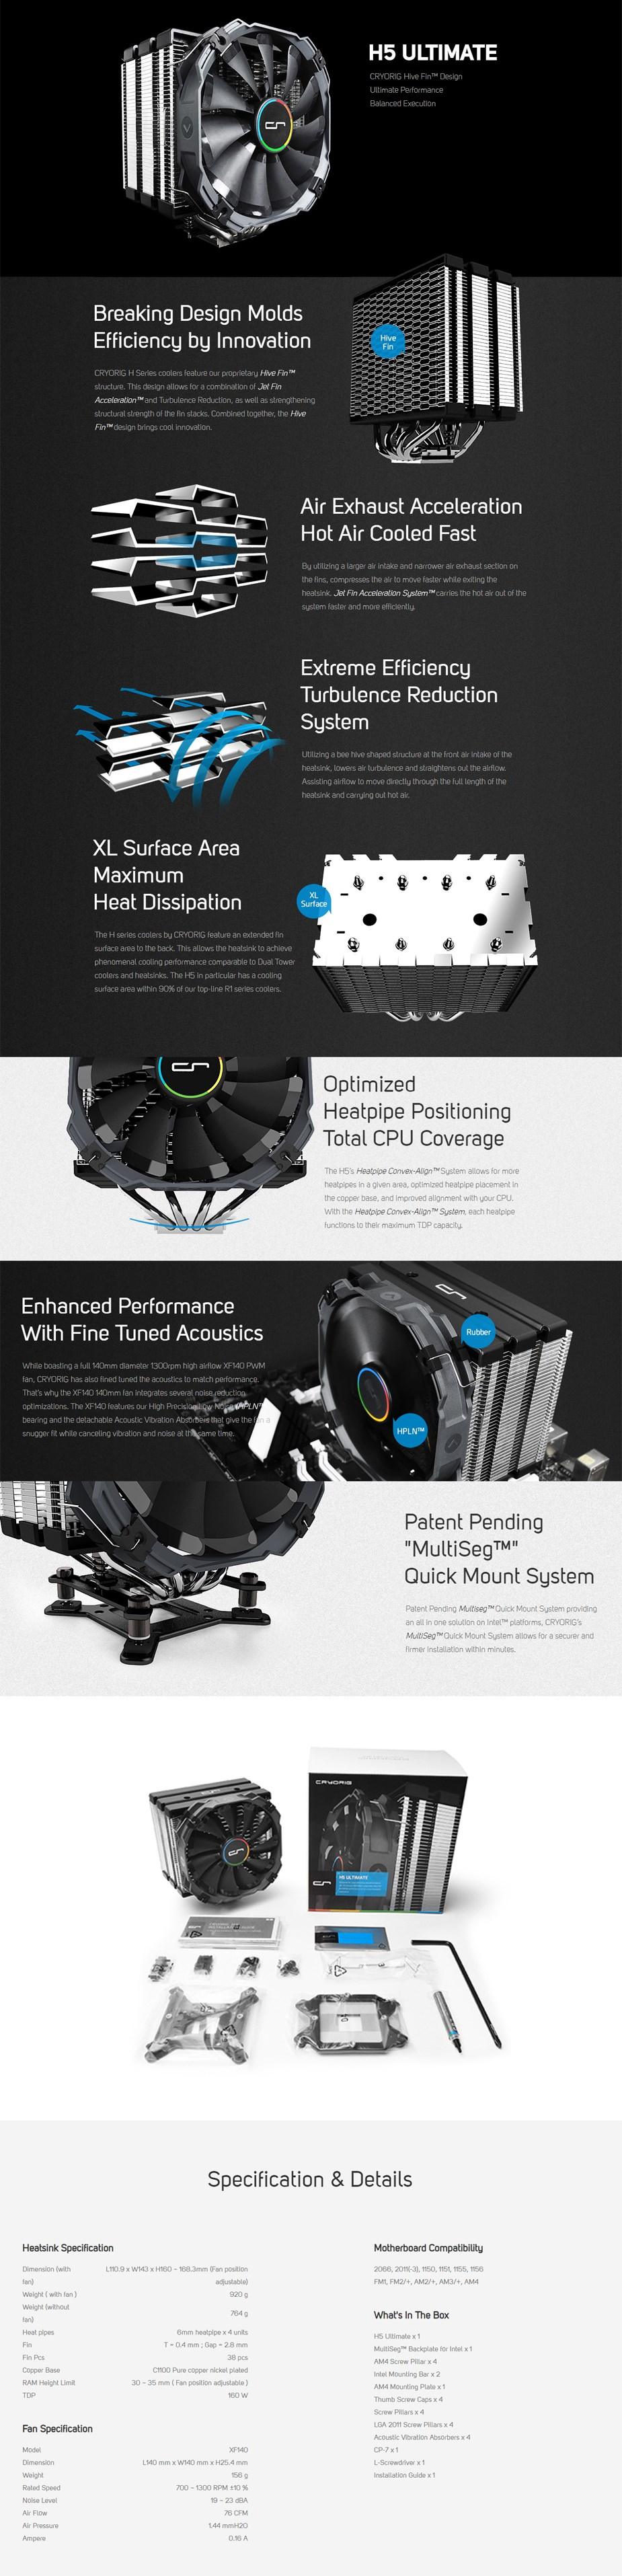 Cryorig H5 Ultimate CPU Cooler - Overview 1